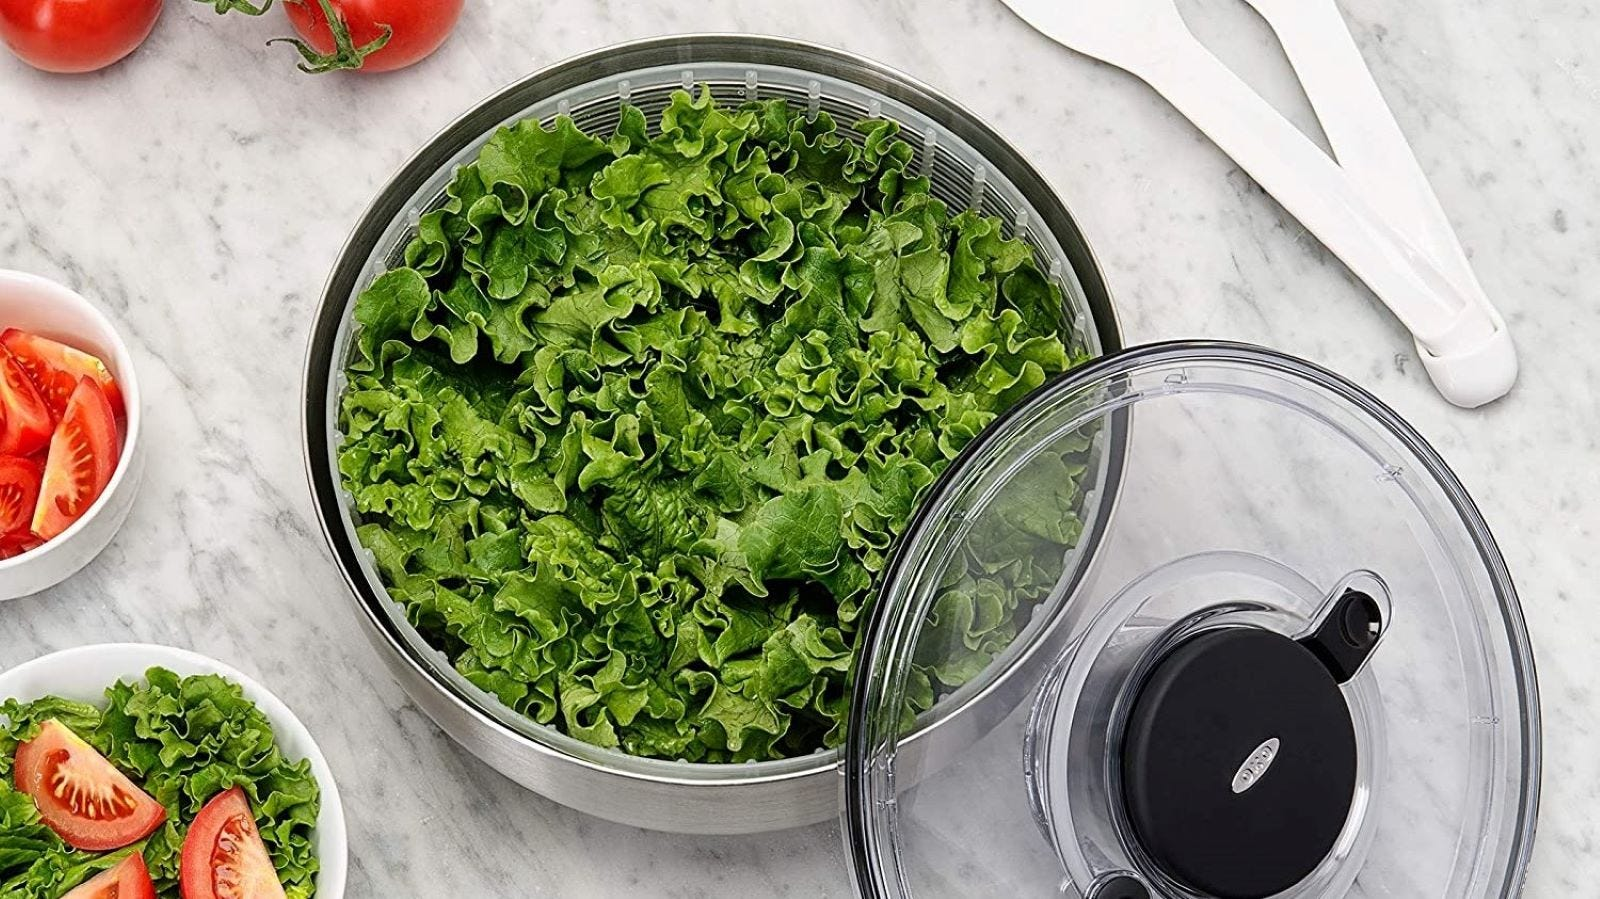 The OXO salad spinner full of leafy green letuuce.